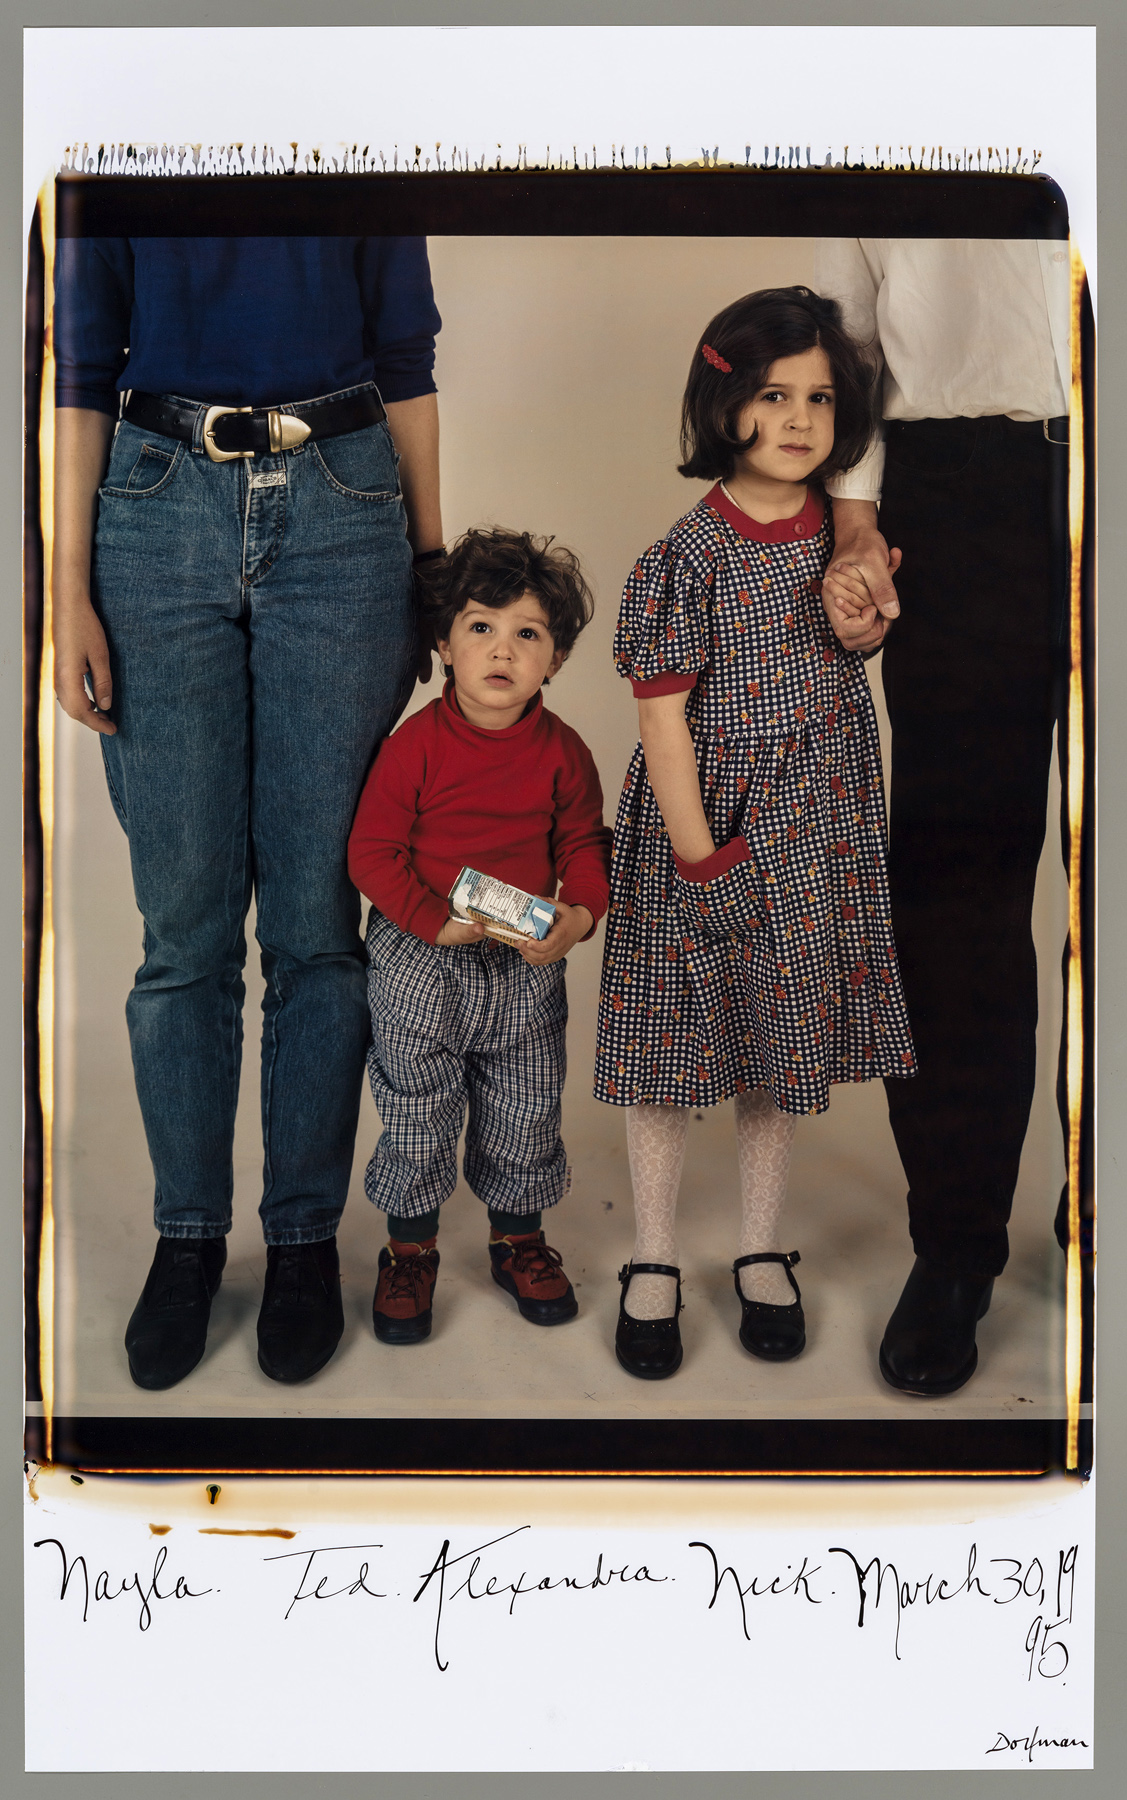 08_nayla-ted-alexandra-nick-march-30-1995_elsa-dorfman-web.jpg